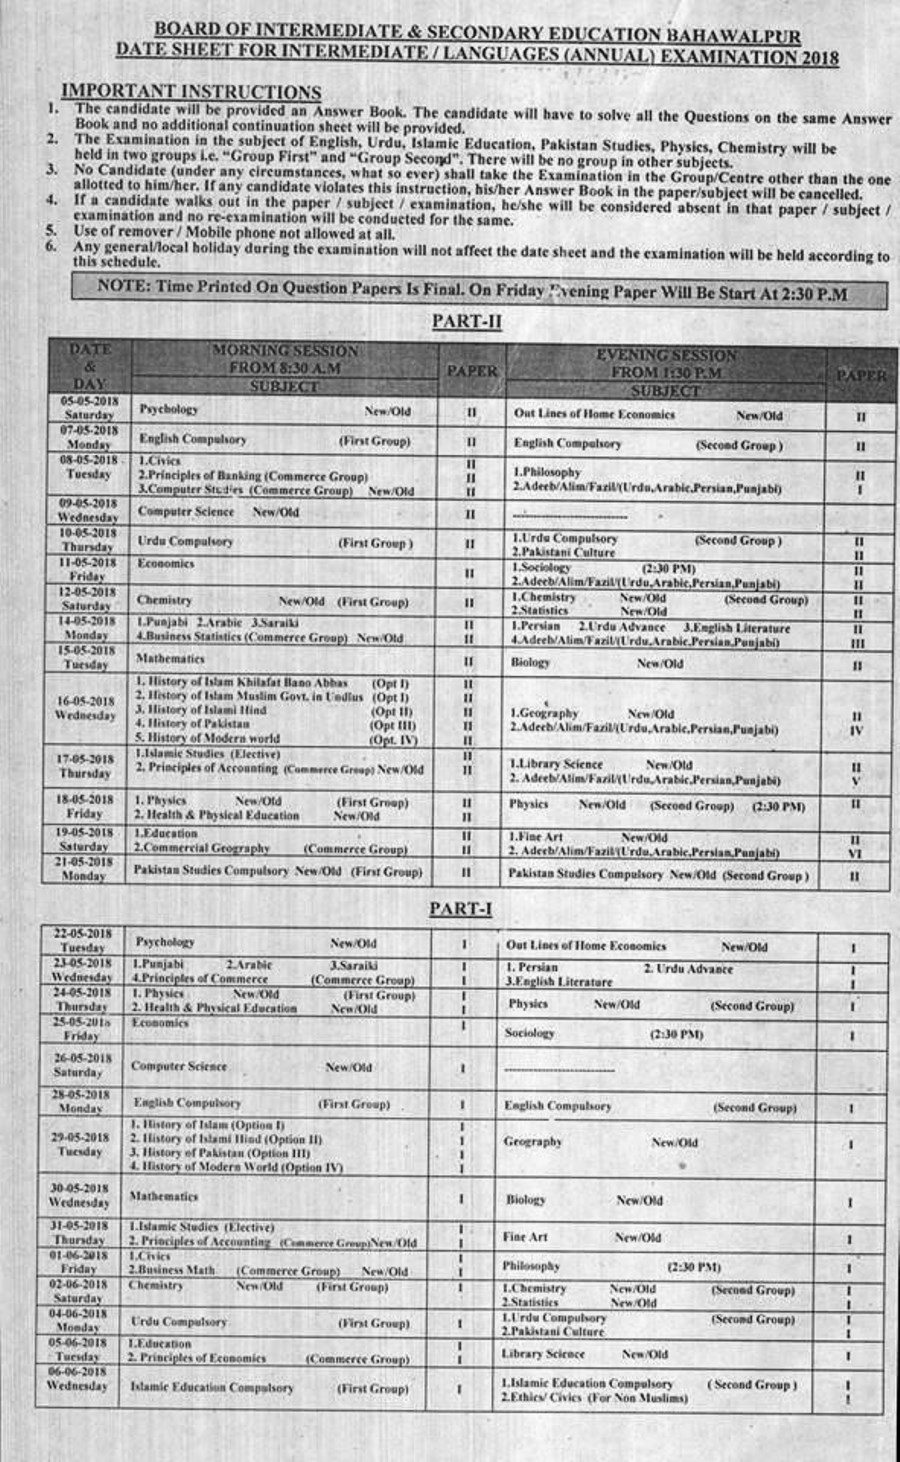 Date Sheet 2018 1st Annual Examination Intermediate Board of Intermediate and Secondary Education Bahawal pur